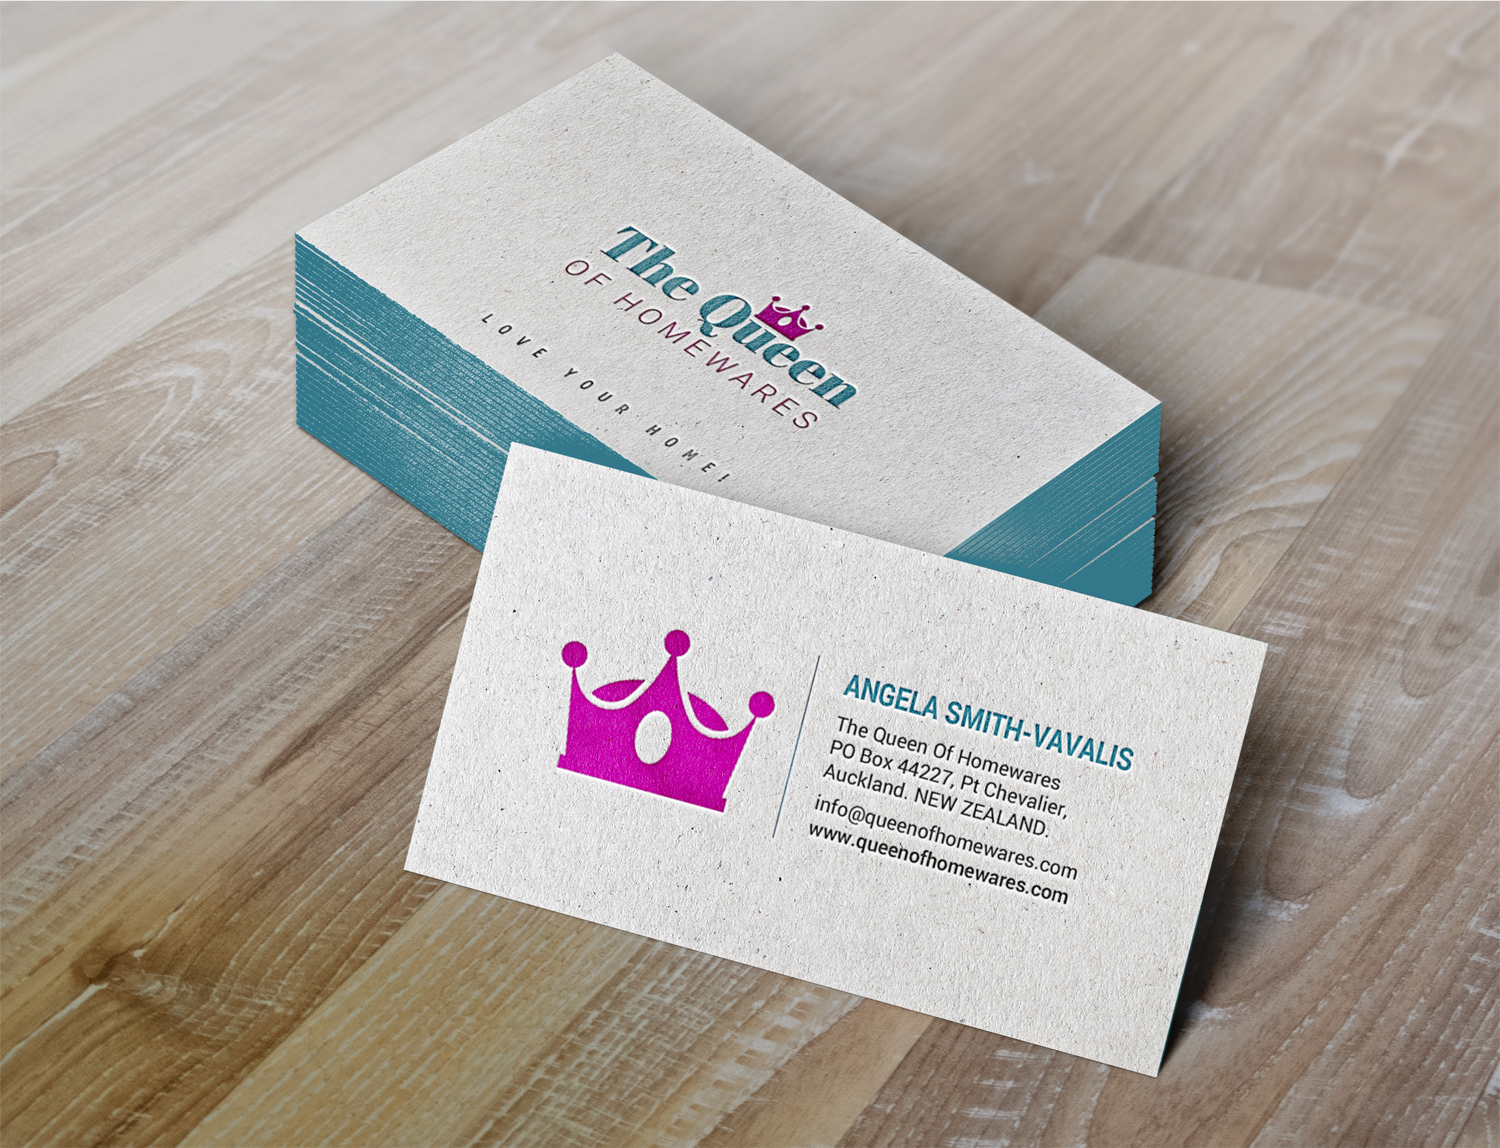 Upmarket bold business business card design for queen of homewares business card design by chandrayaaneative for queen of homewares design 17688137 reheart Image collections